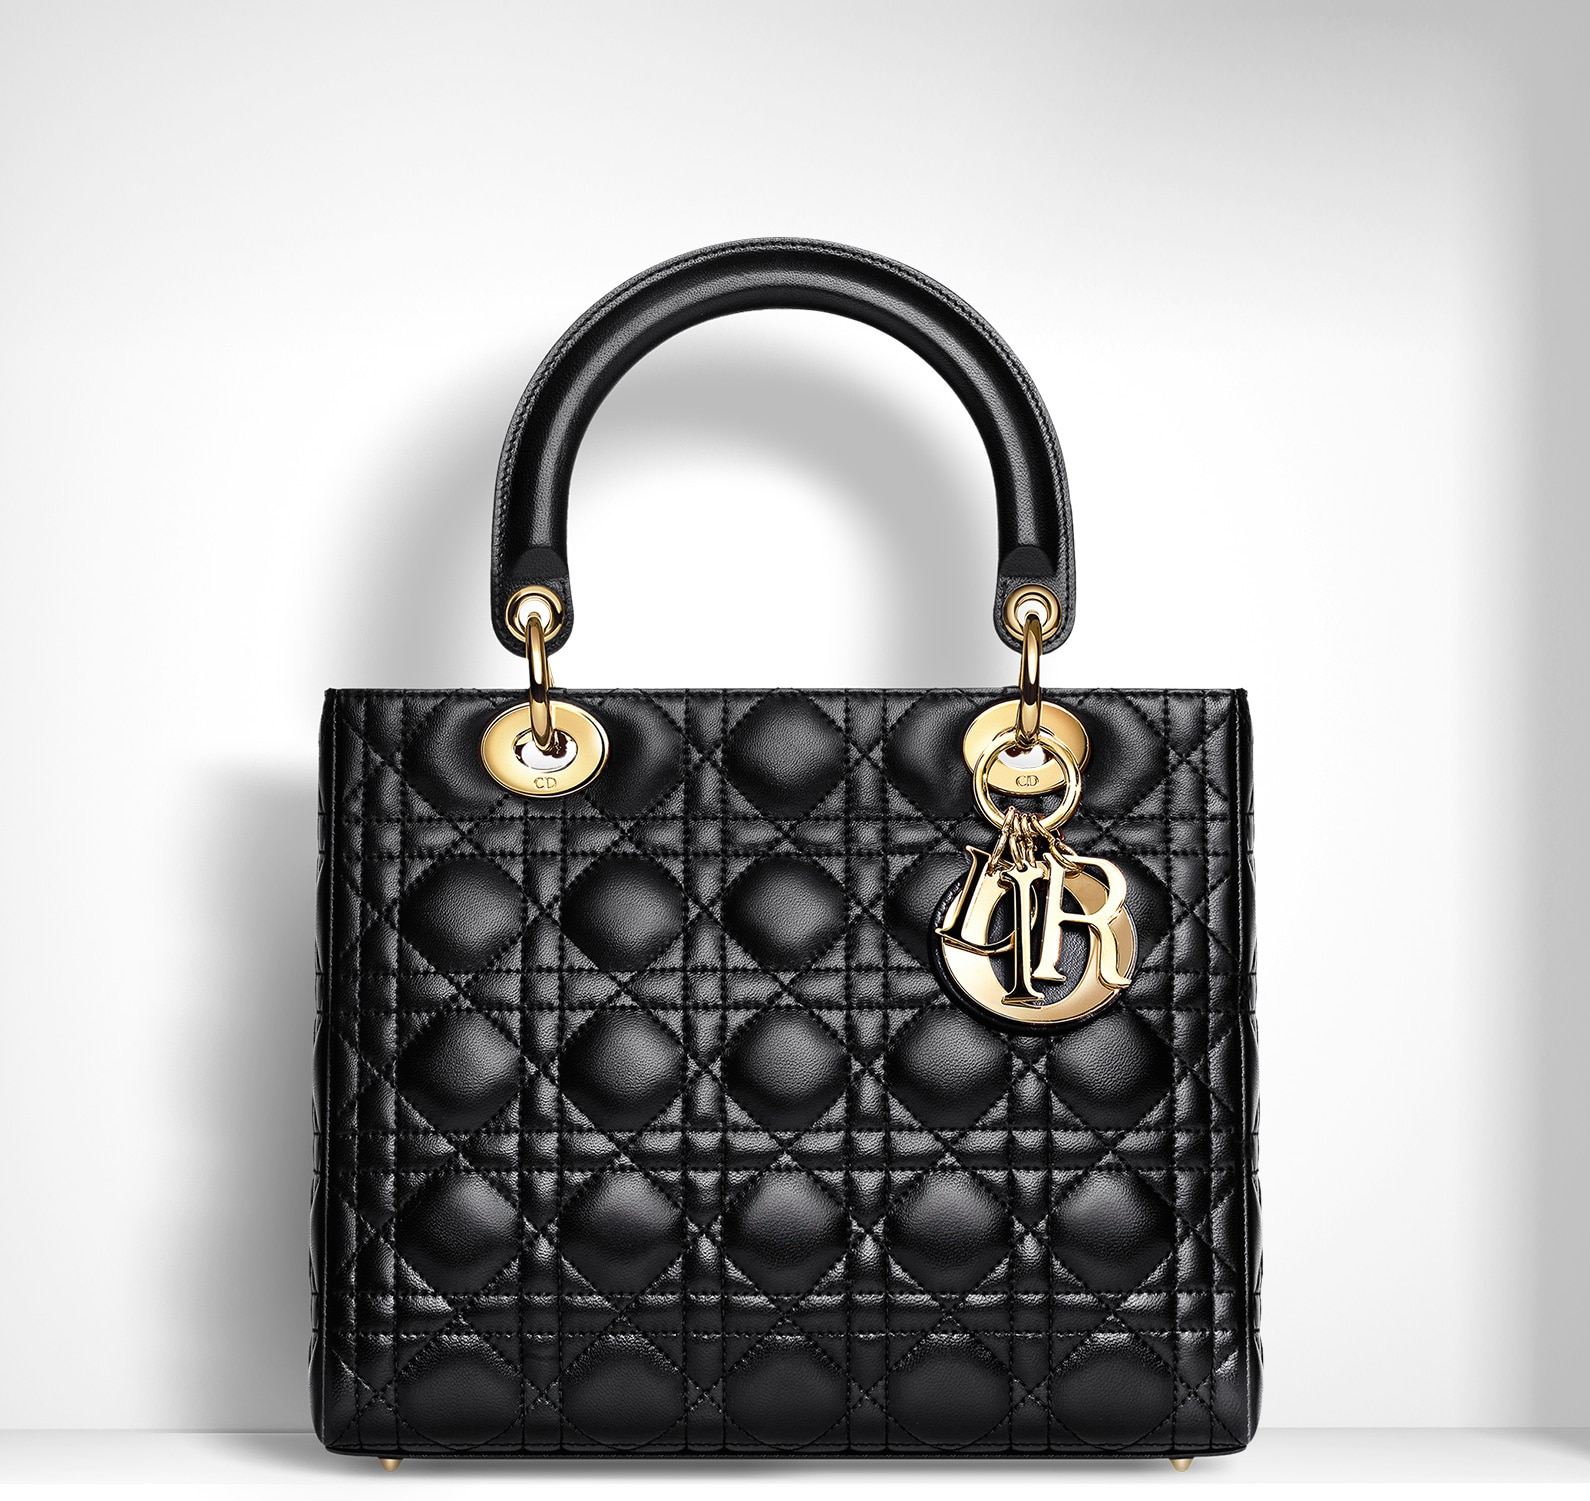 37eebd521186 Lady Dior Bag Reference Guide